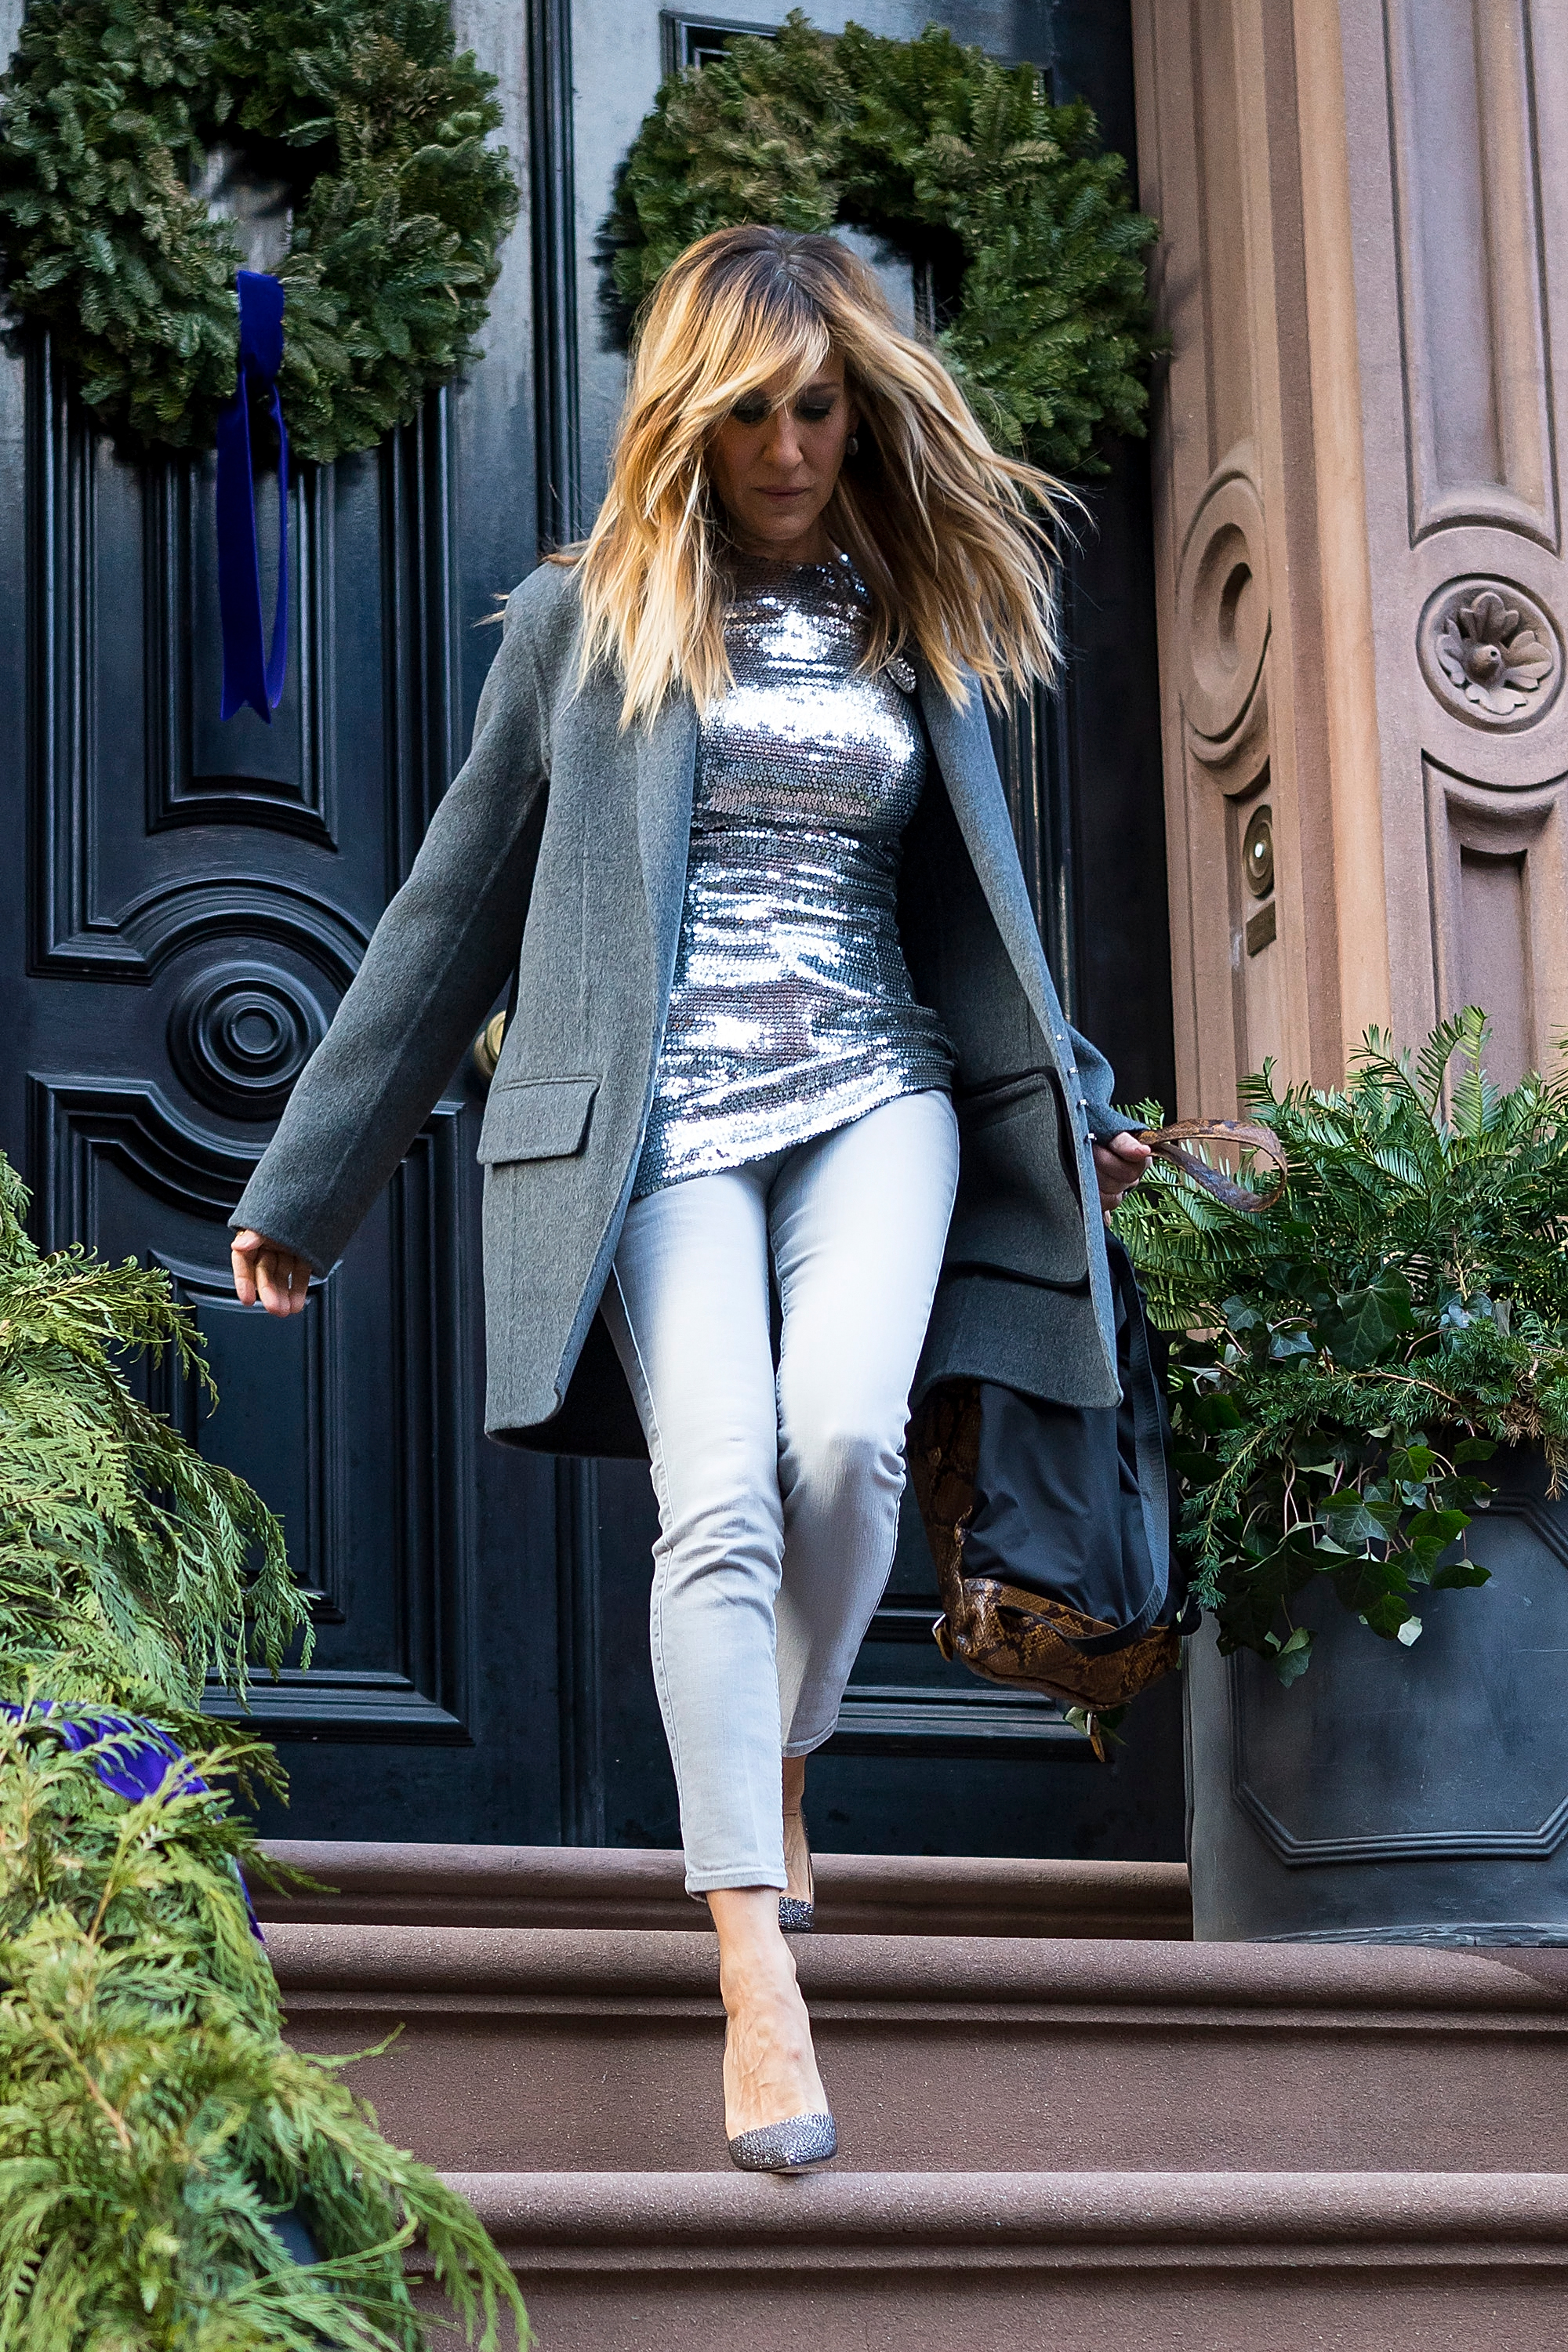 <p>Even when they're not busy strutting the red carpet or fronting premieres,  the A-list still manage to pull plenty of star power in the style stakes.</p> <p>This week Gigi and Bella Hadid used the streets of New York as their personal runway while they were out and about in looks to kill, while Lupita Nyong'o stepped out for dinner in head to toe leather in Los Angeles.</p> <p>Take a look at some of our favourite off-duty looks for the week…</p>